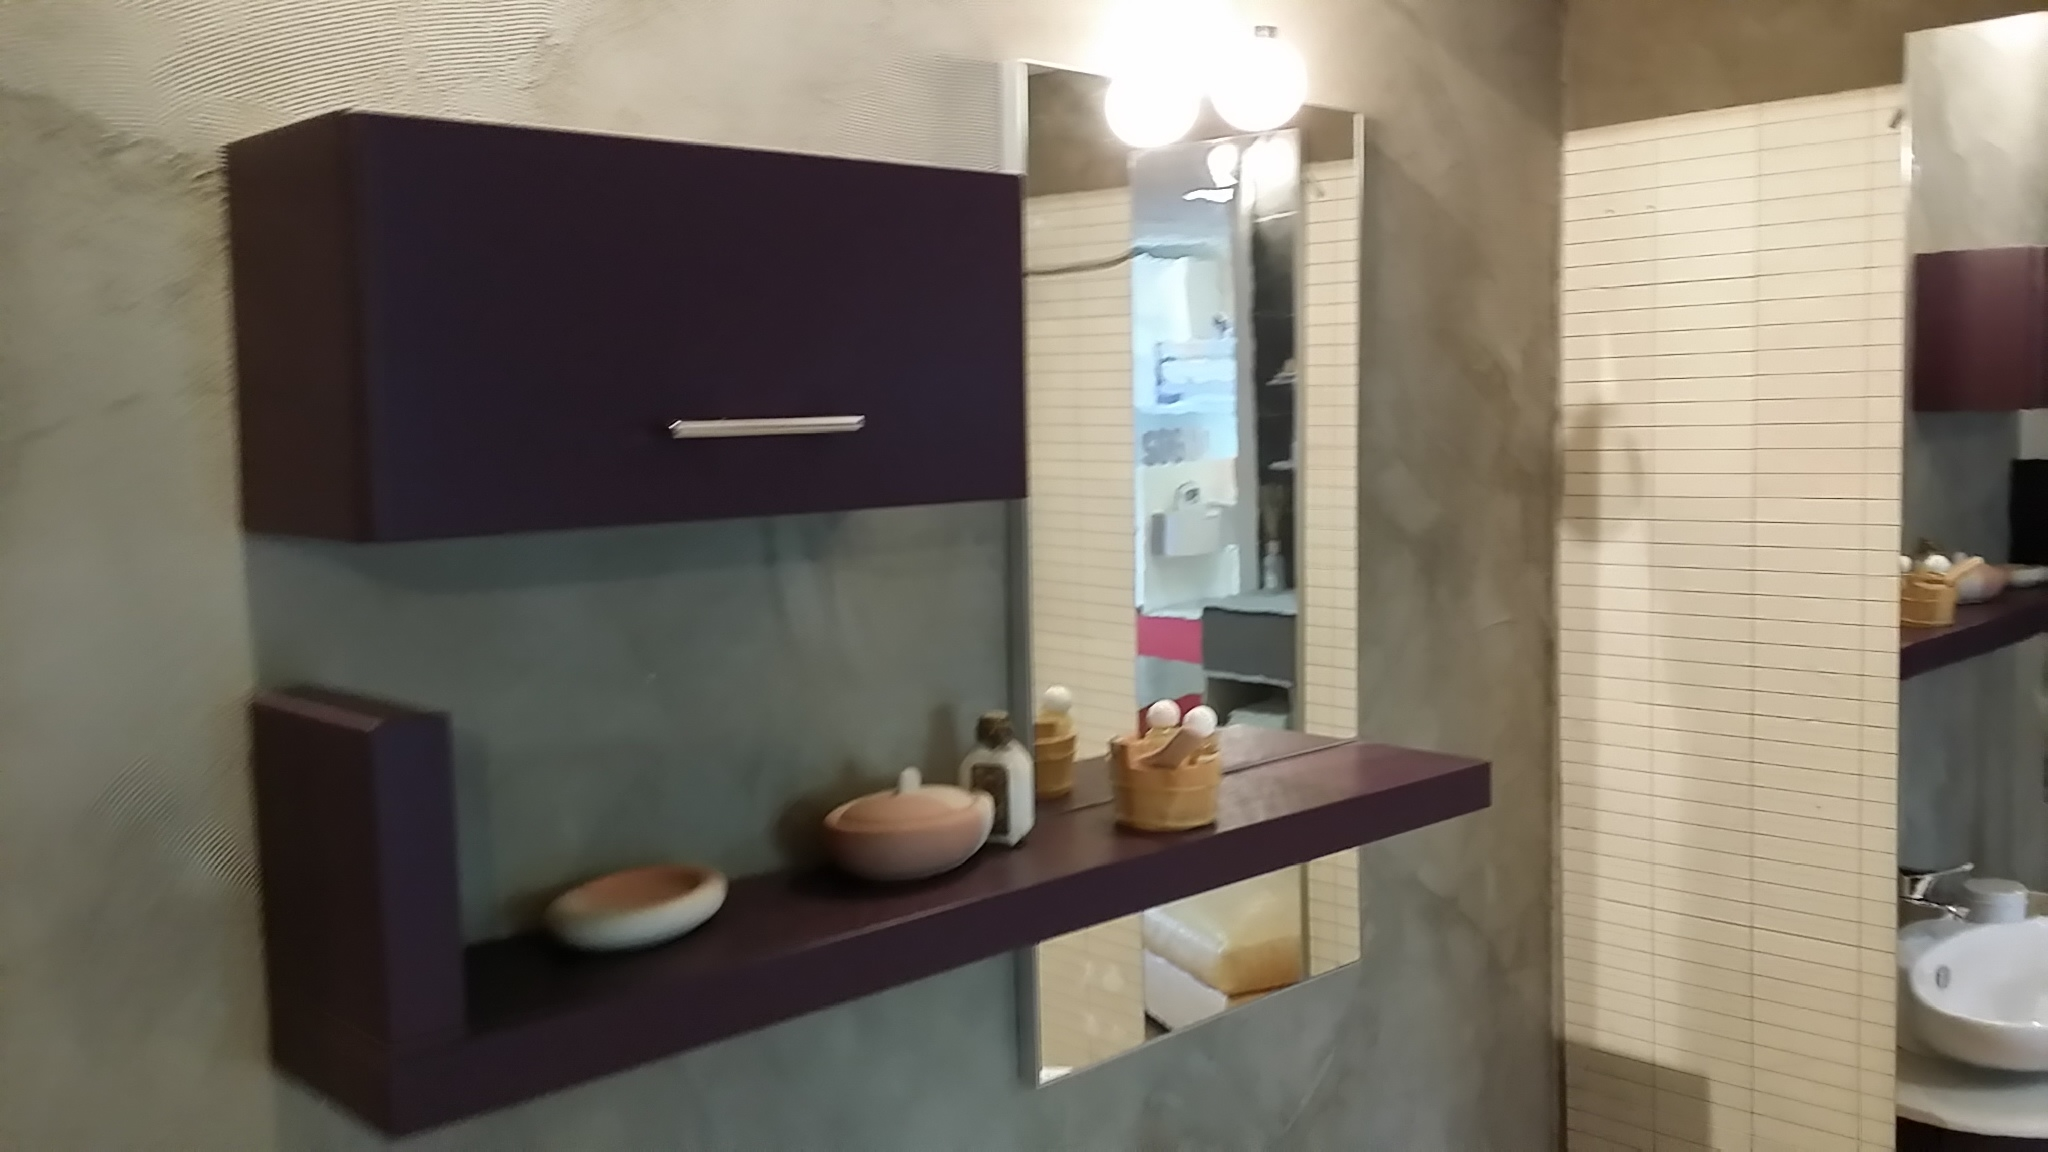 Sanitari bagno outlet cheap gallery of bagno outlet - Outlet piastrelle bagno ...